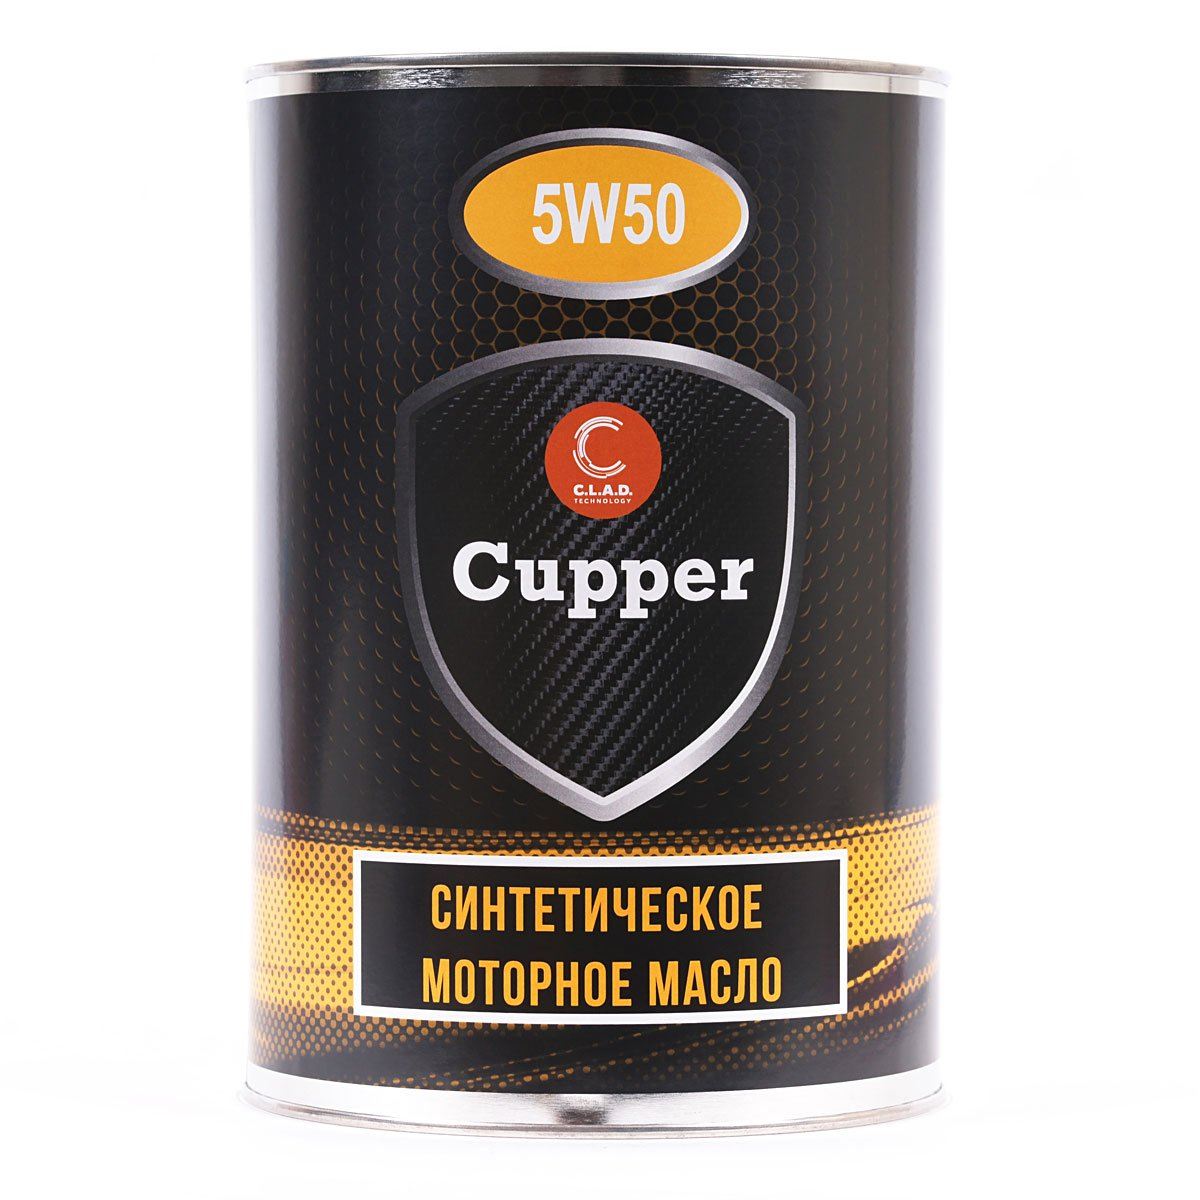 Cupper oil